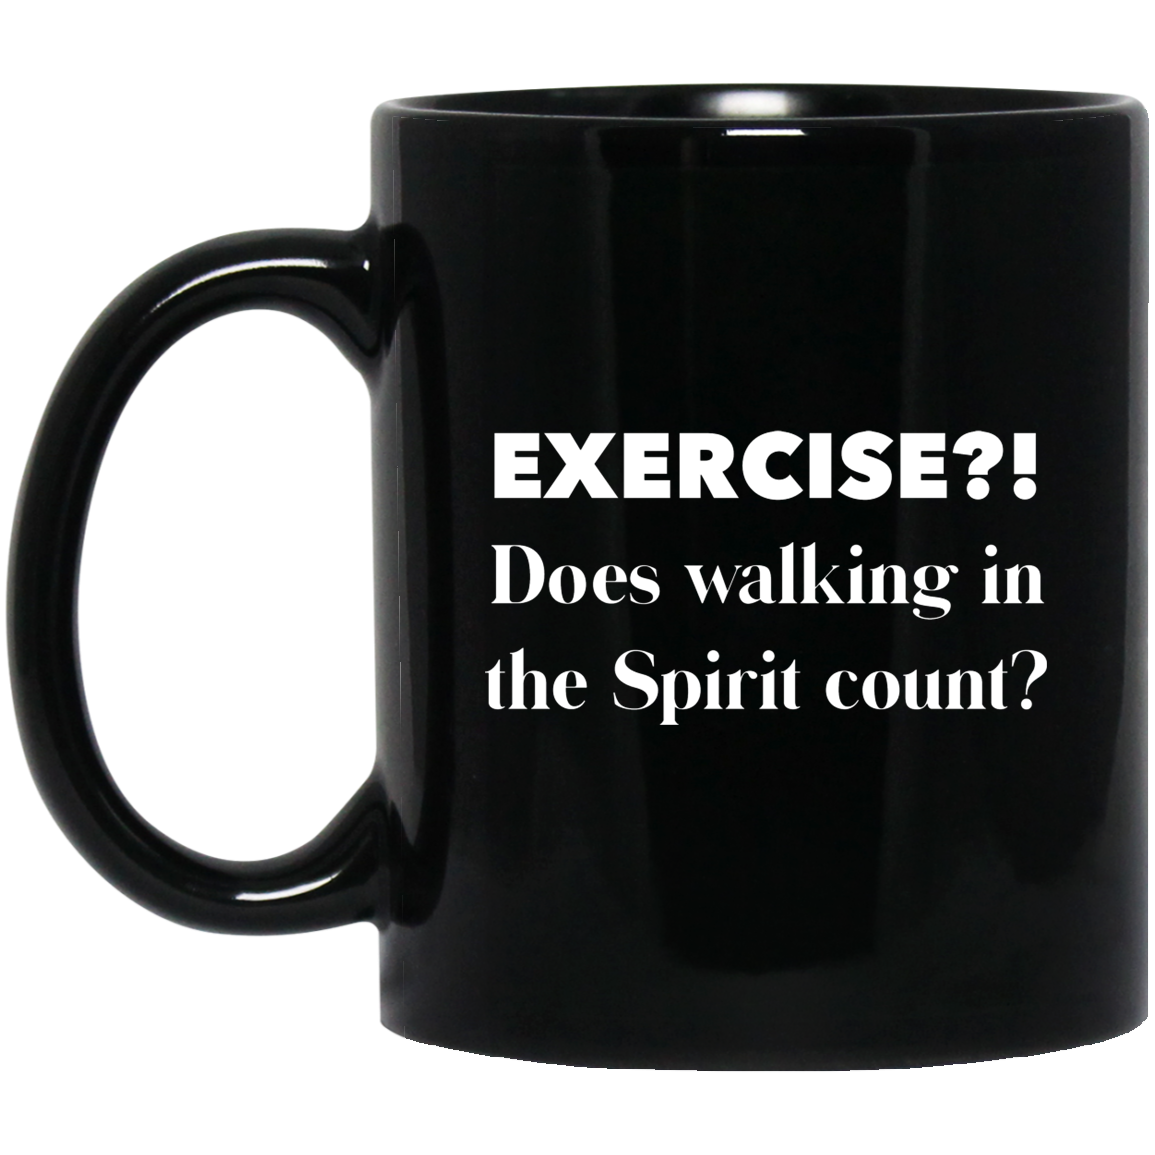 Exercise in the Spirit- Funny Black Mug